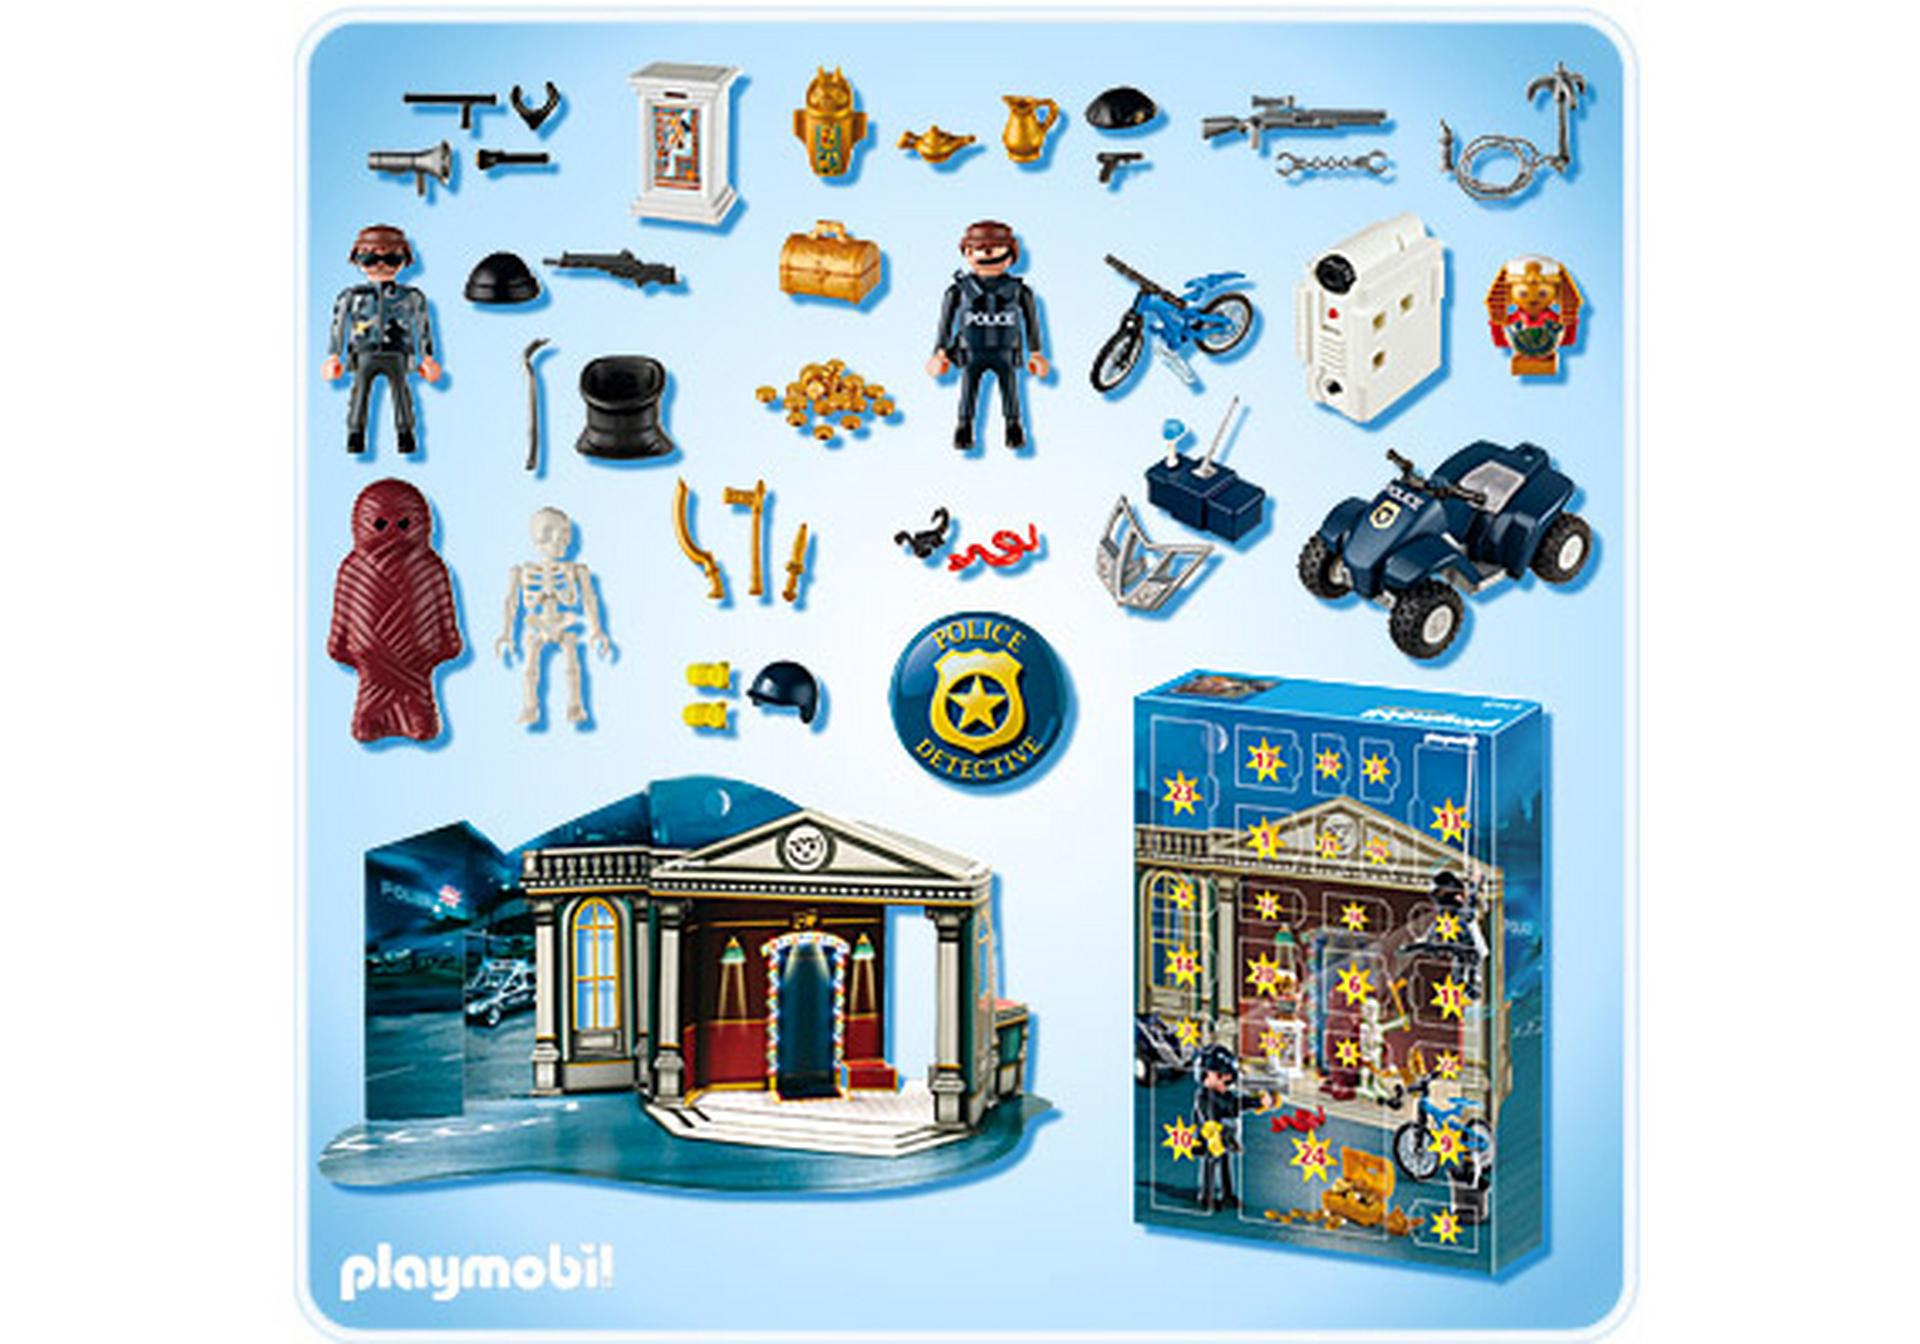 adventskalender polizeialarm schatzr uber auf der flucht 4168 a playmobil deutschland. Black Bedroom Furniture Sets. Home Design Ideas